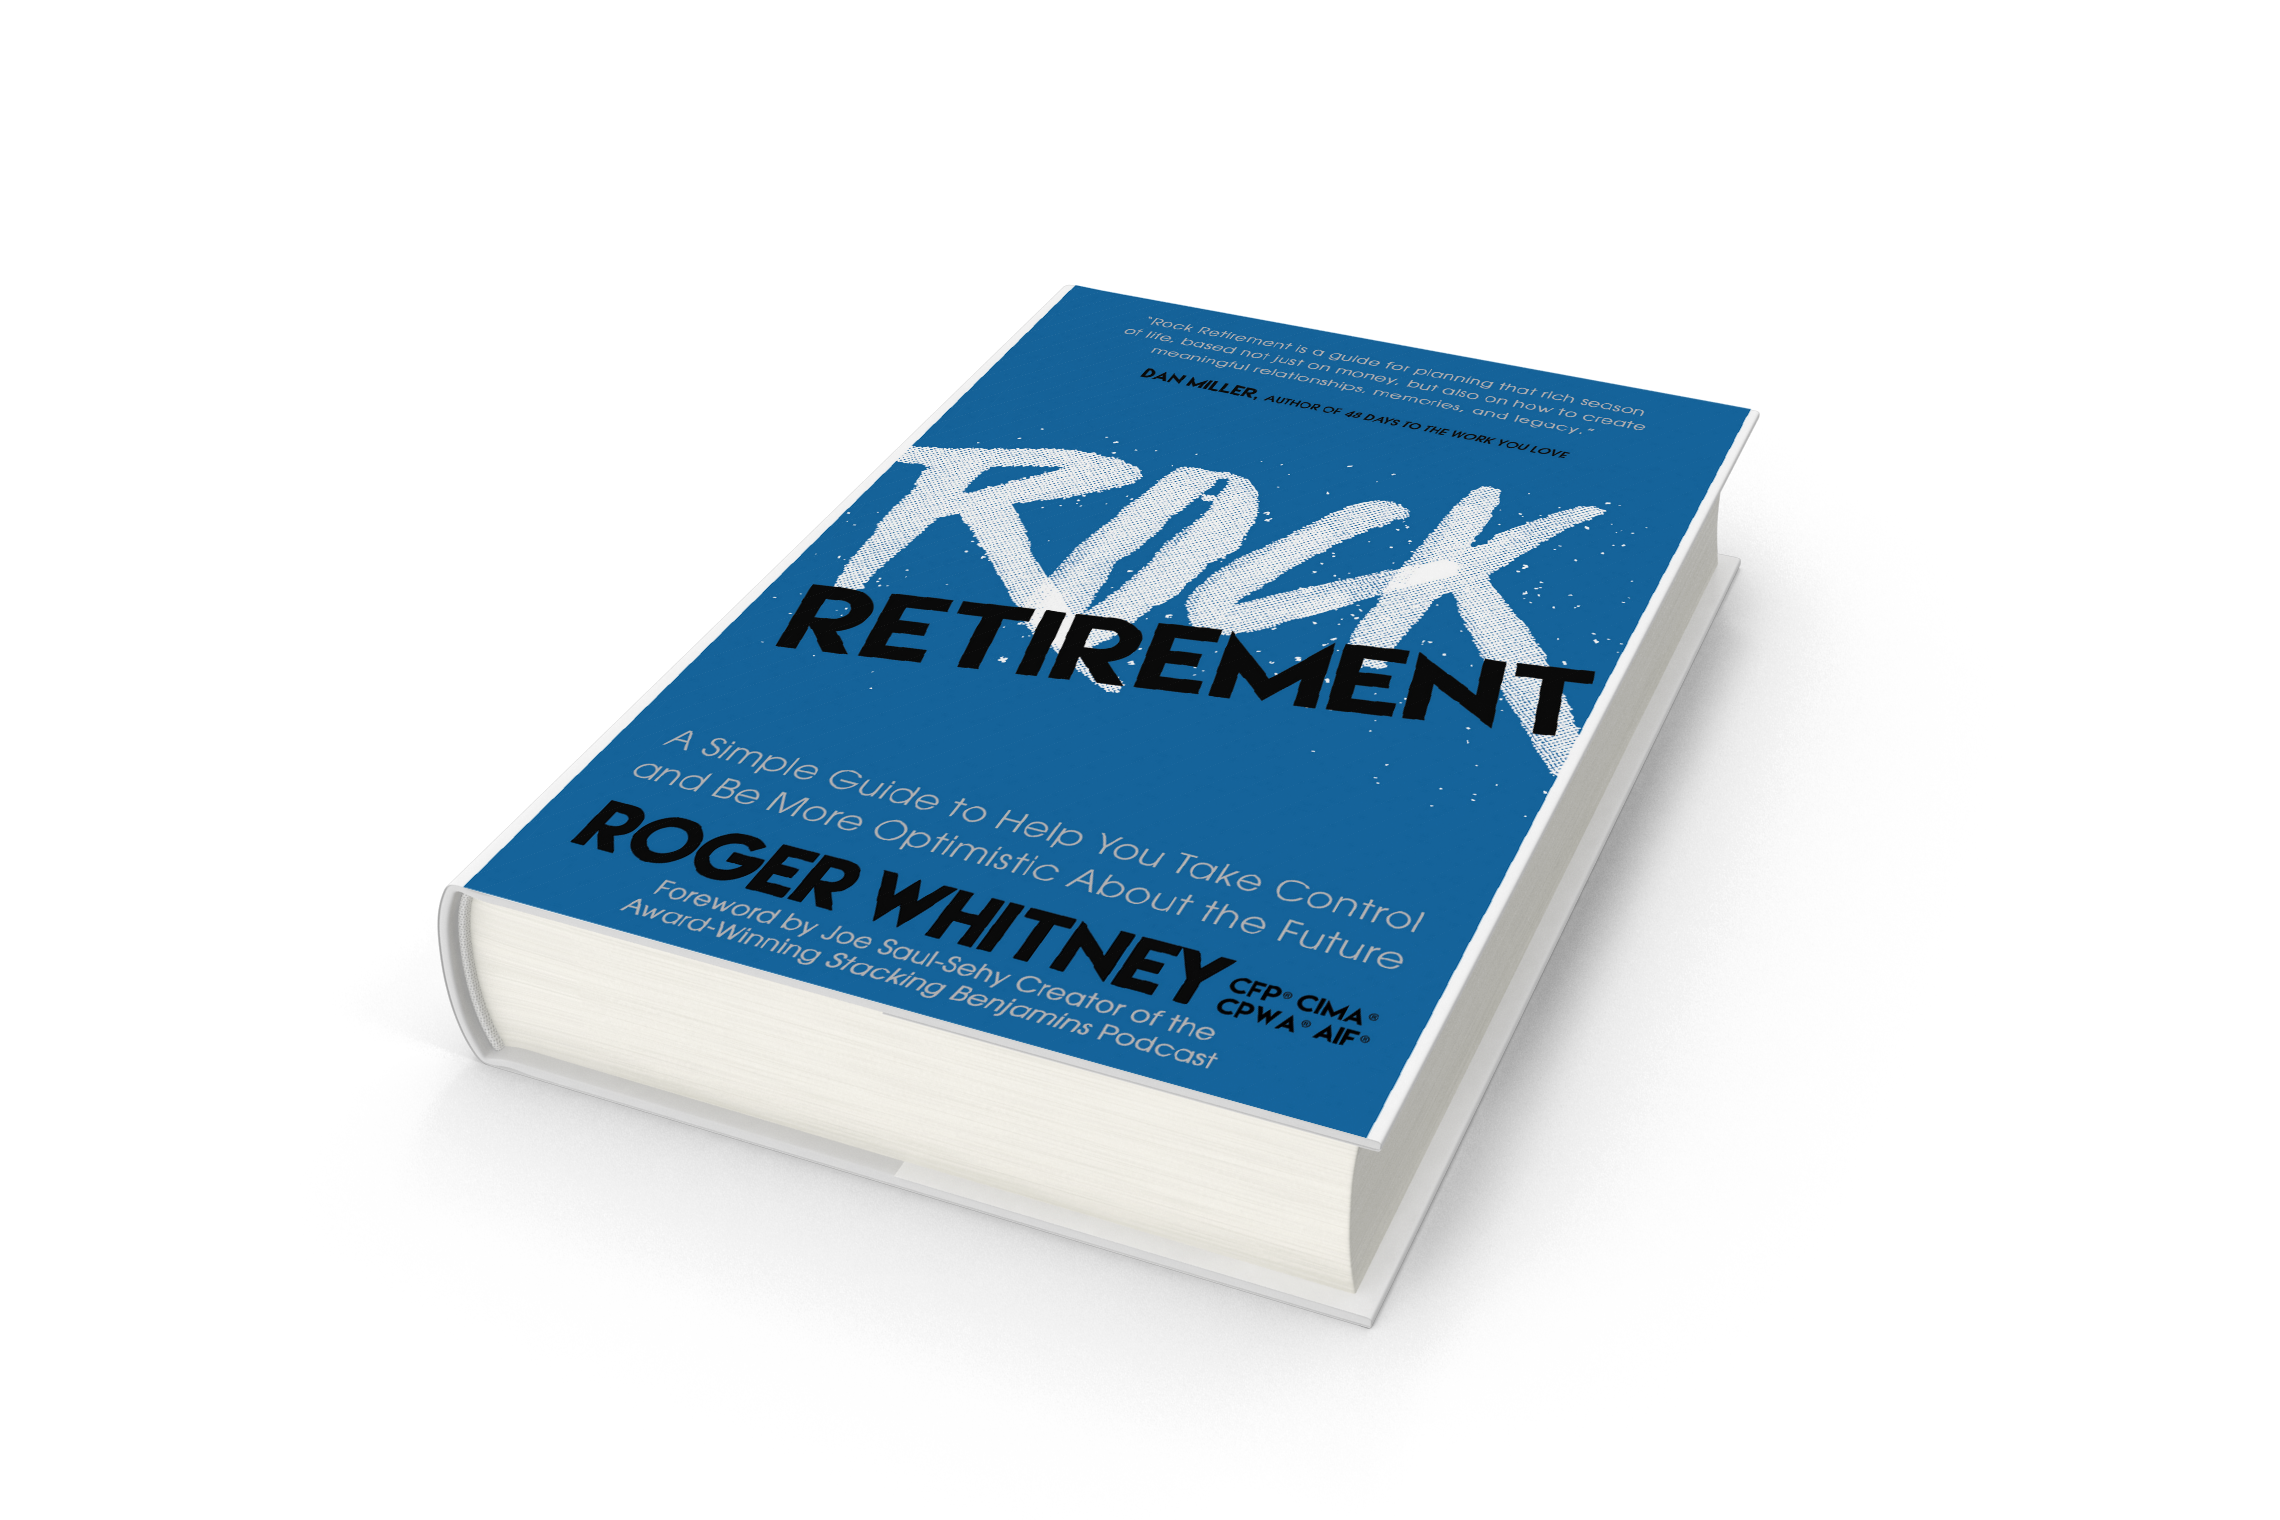 Your page-by-page guide to the good life.  - I poured over 25 years of experience, anecdotes, tips and advice onto 231 pages so you can start living your best life and planning your best retirement right now.